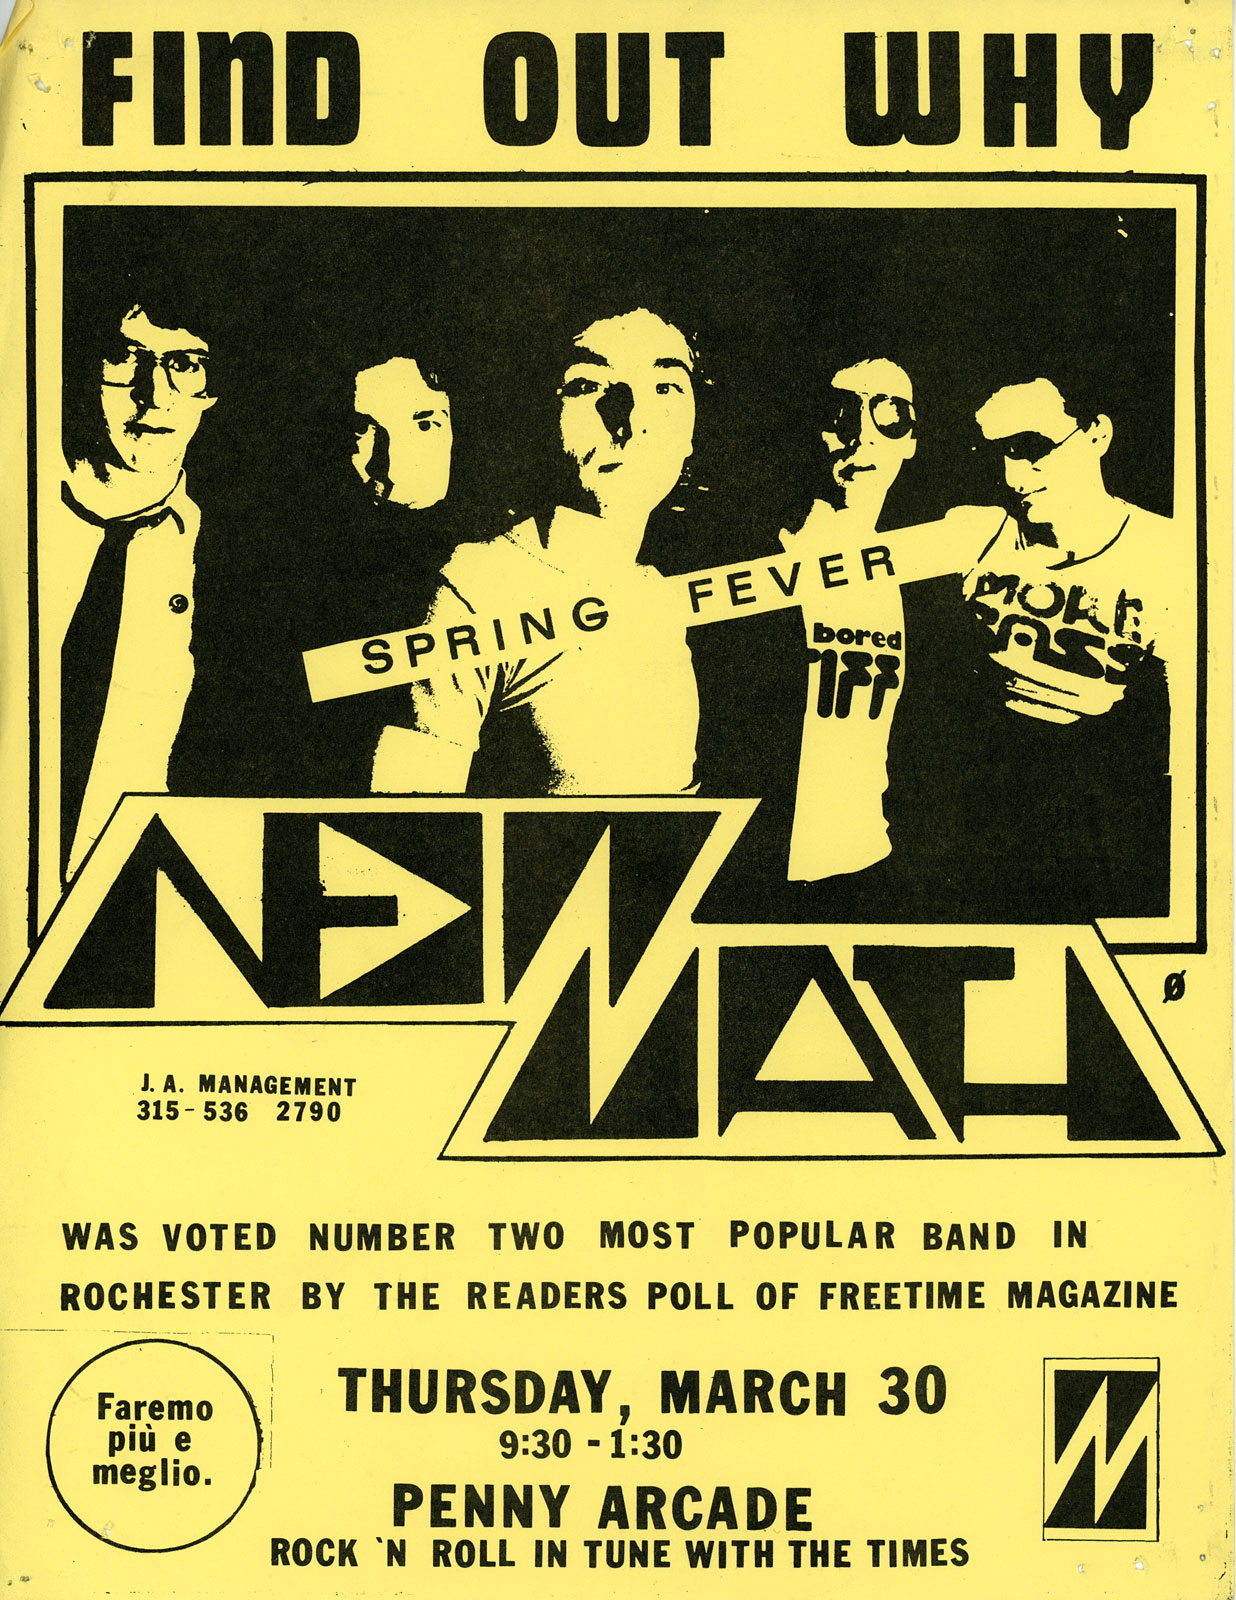 Poster for New Math at Penny Arcade in Rochester, New York 03.30.1978. Poster shows Paul Dodd, Dale Mincey, Kevin Patrick, Robert Slide and Gary Trainer. New Math logo by Tim Dodd. Paul Dodd - drums, Gary Trainer - guitar, Kevin Patrick - vocals, Dale Mincey - guitar, Robert Slide - bass. Poster by Paul Dodd.